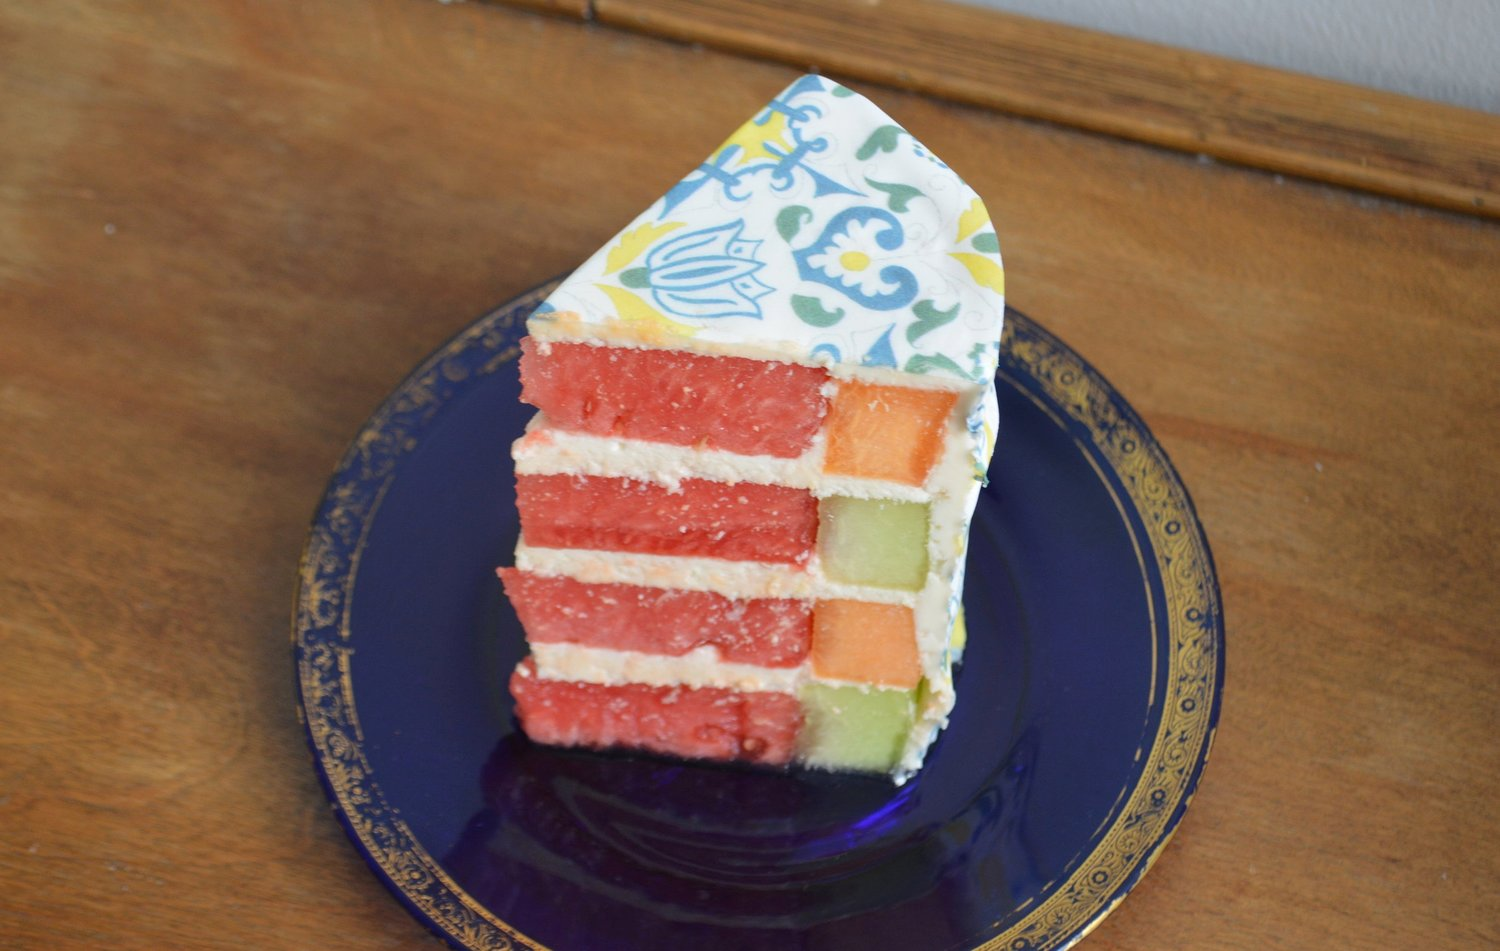 Melon Cake with Chefanie Sheets